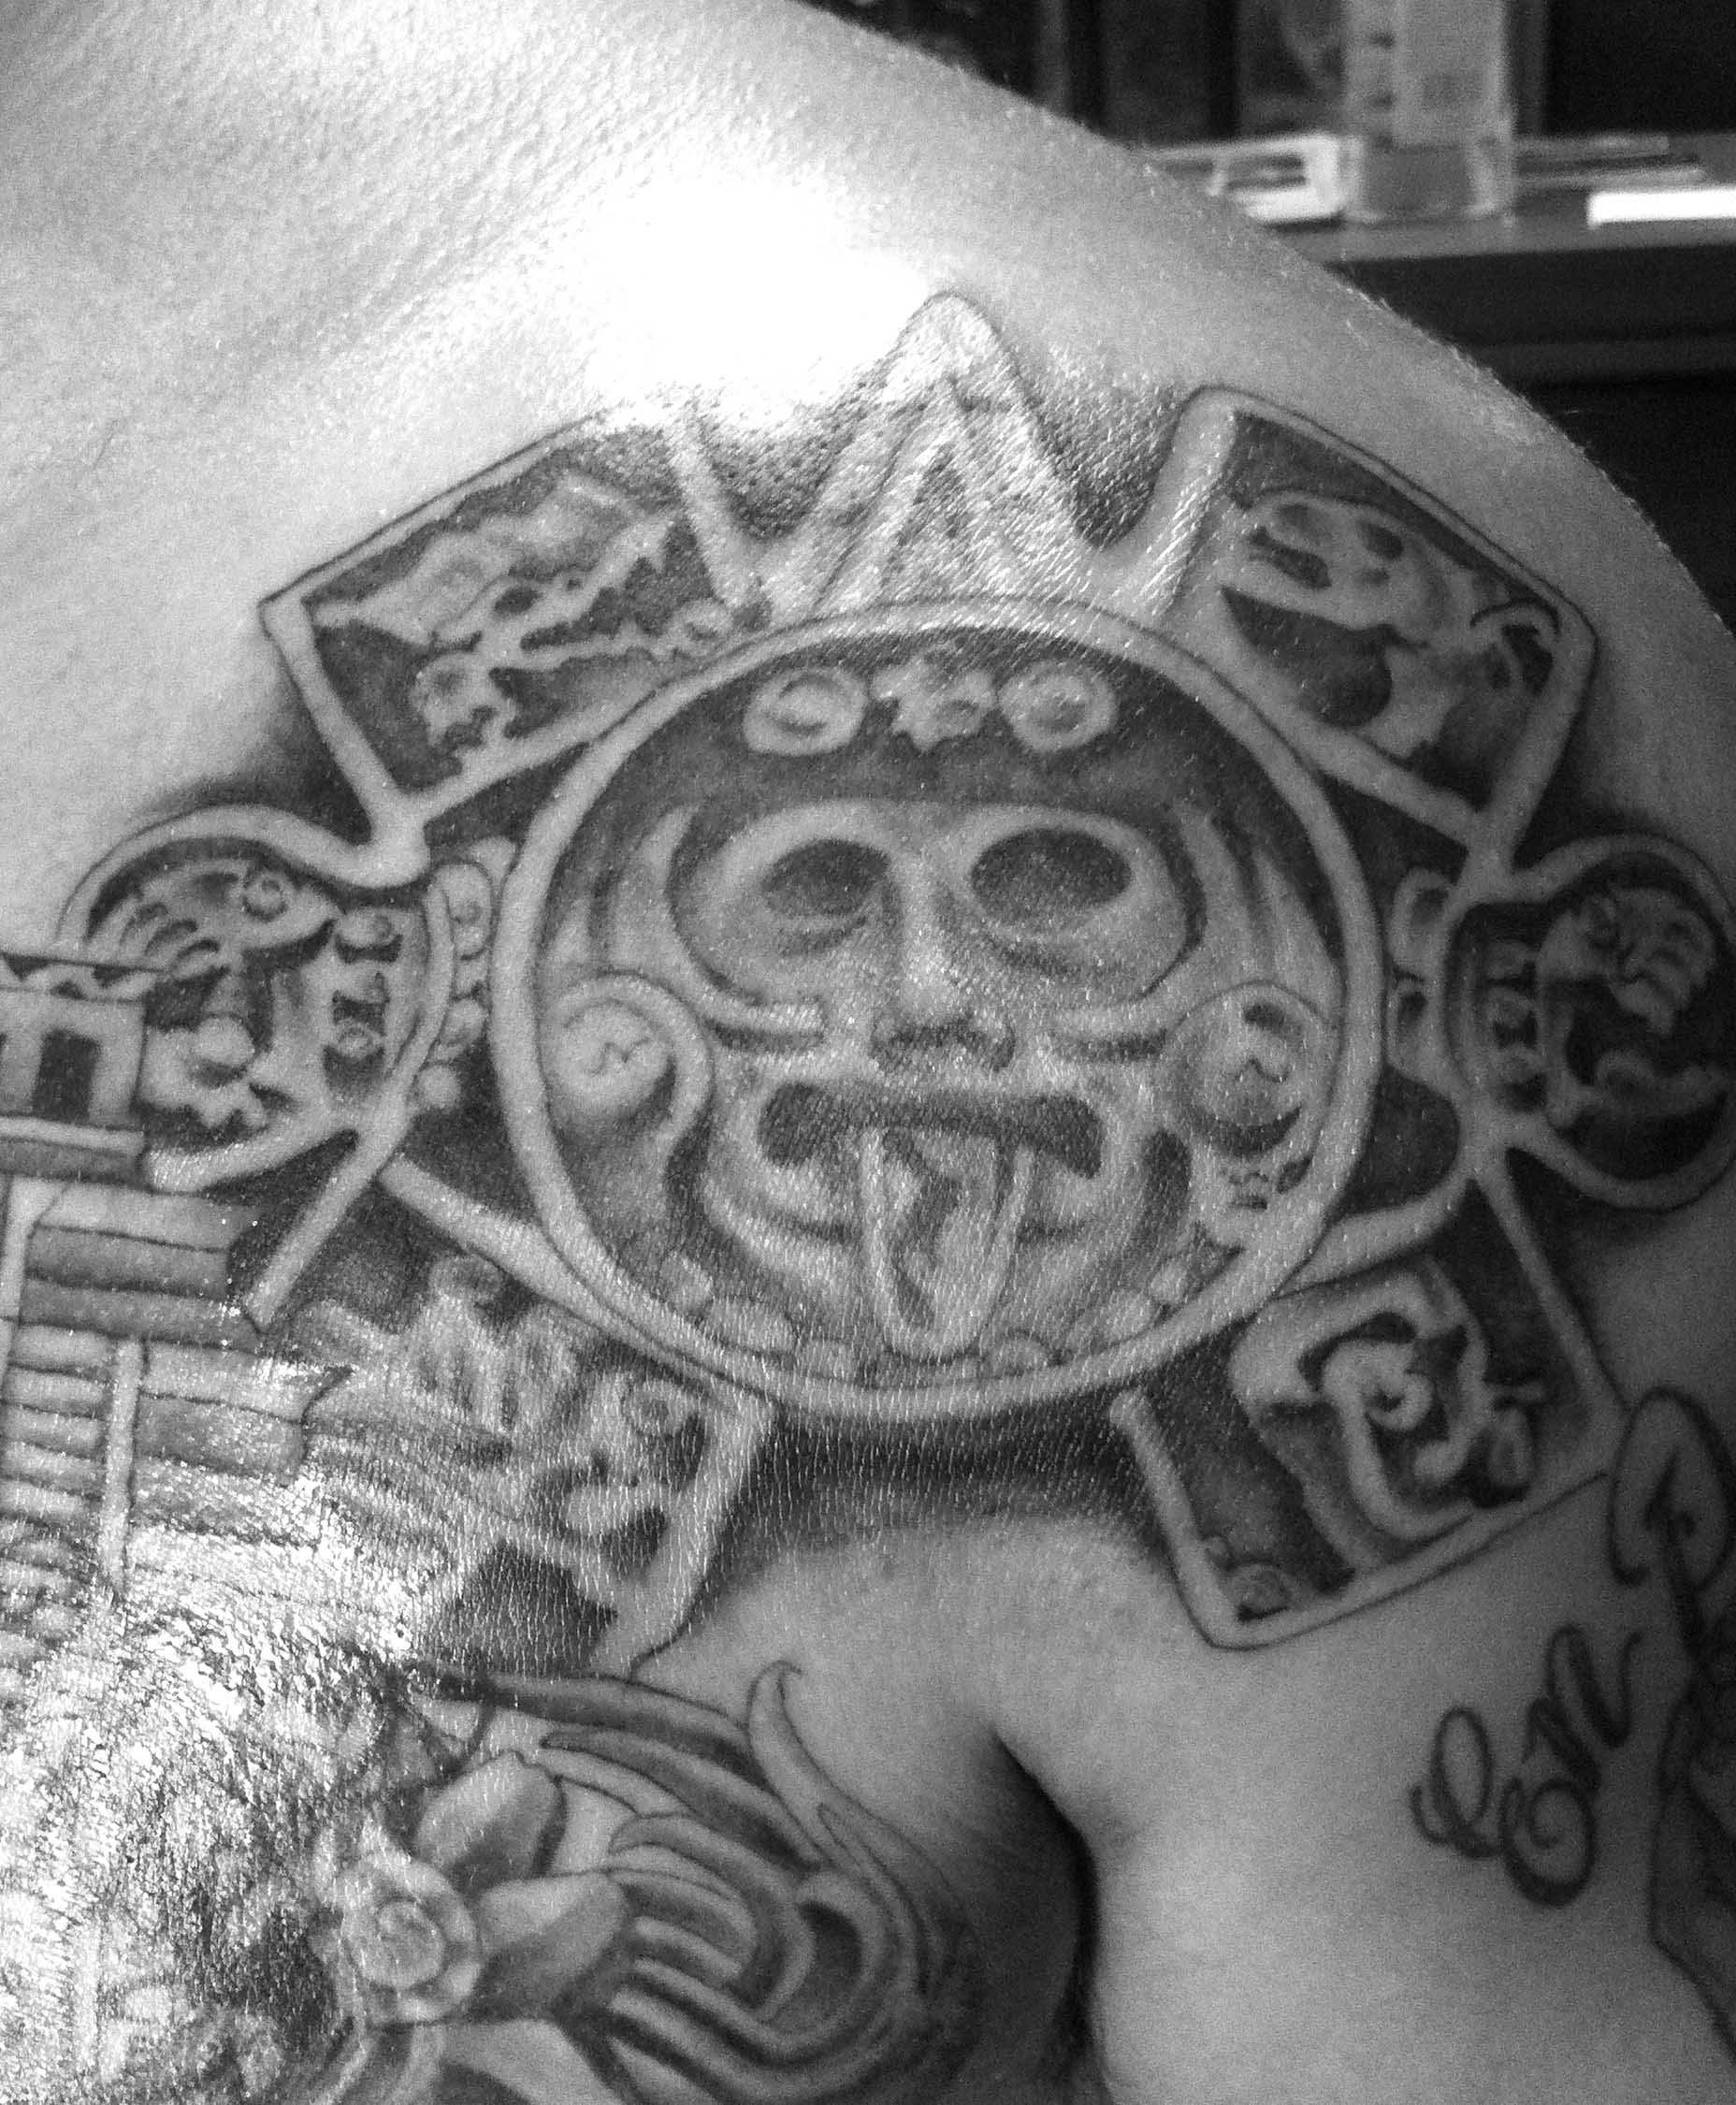 Aztec Tattoos Designs Ideas And Meaning: Aztec Tattoos Designs, Ideas And Meaning